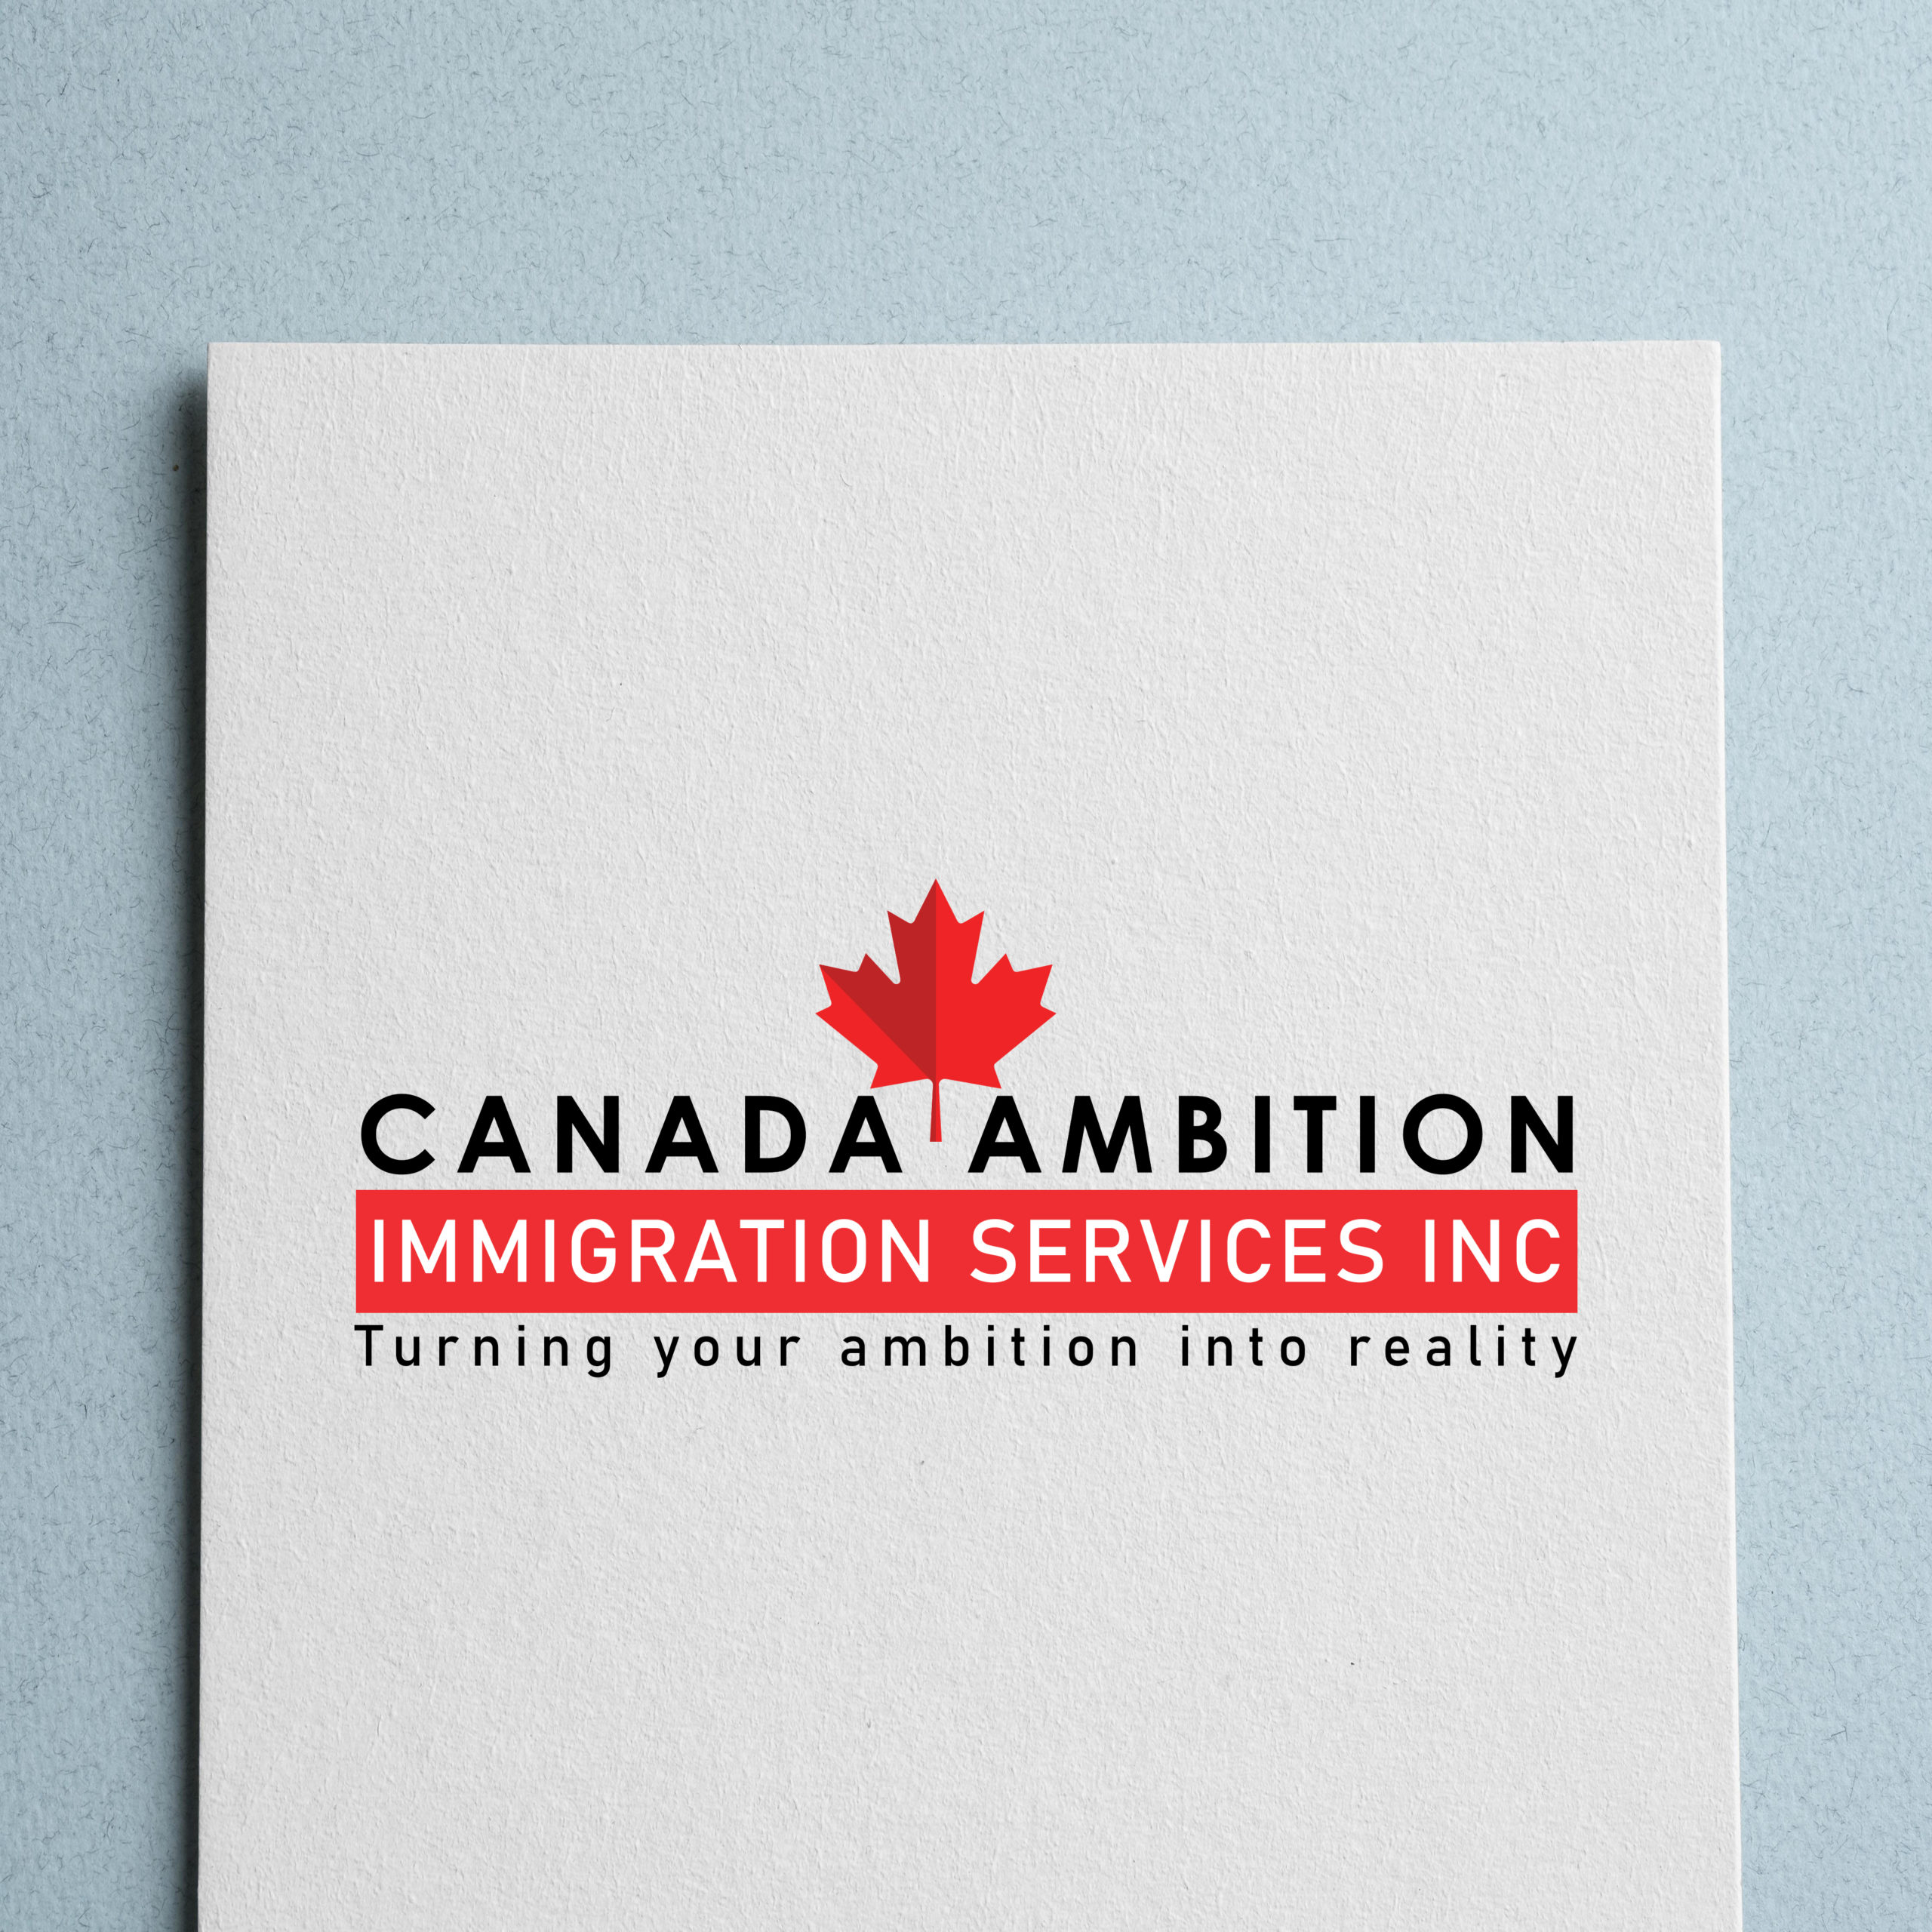 Canada Ambition Immigration Services